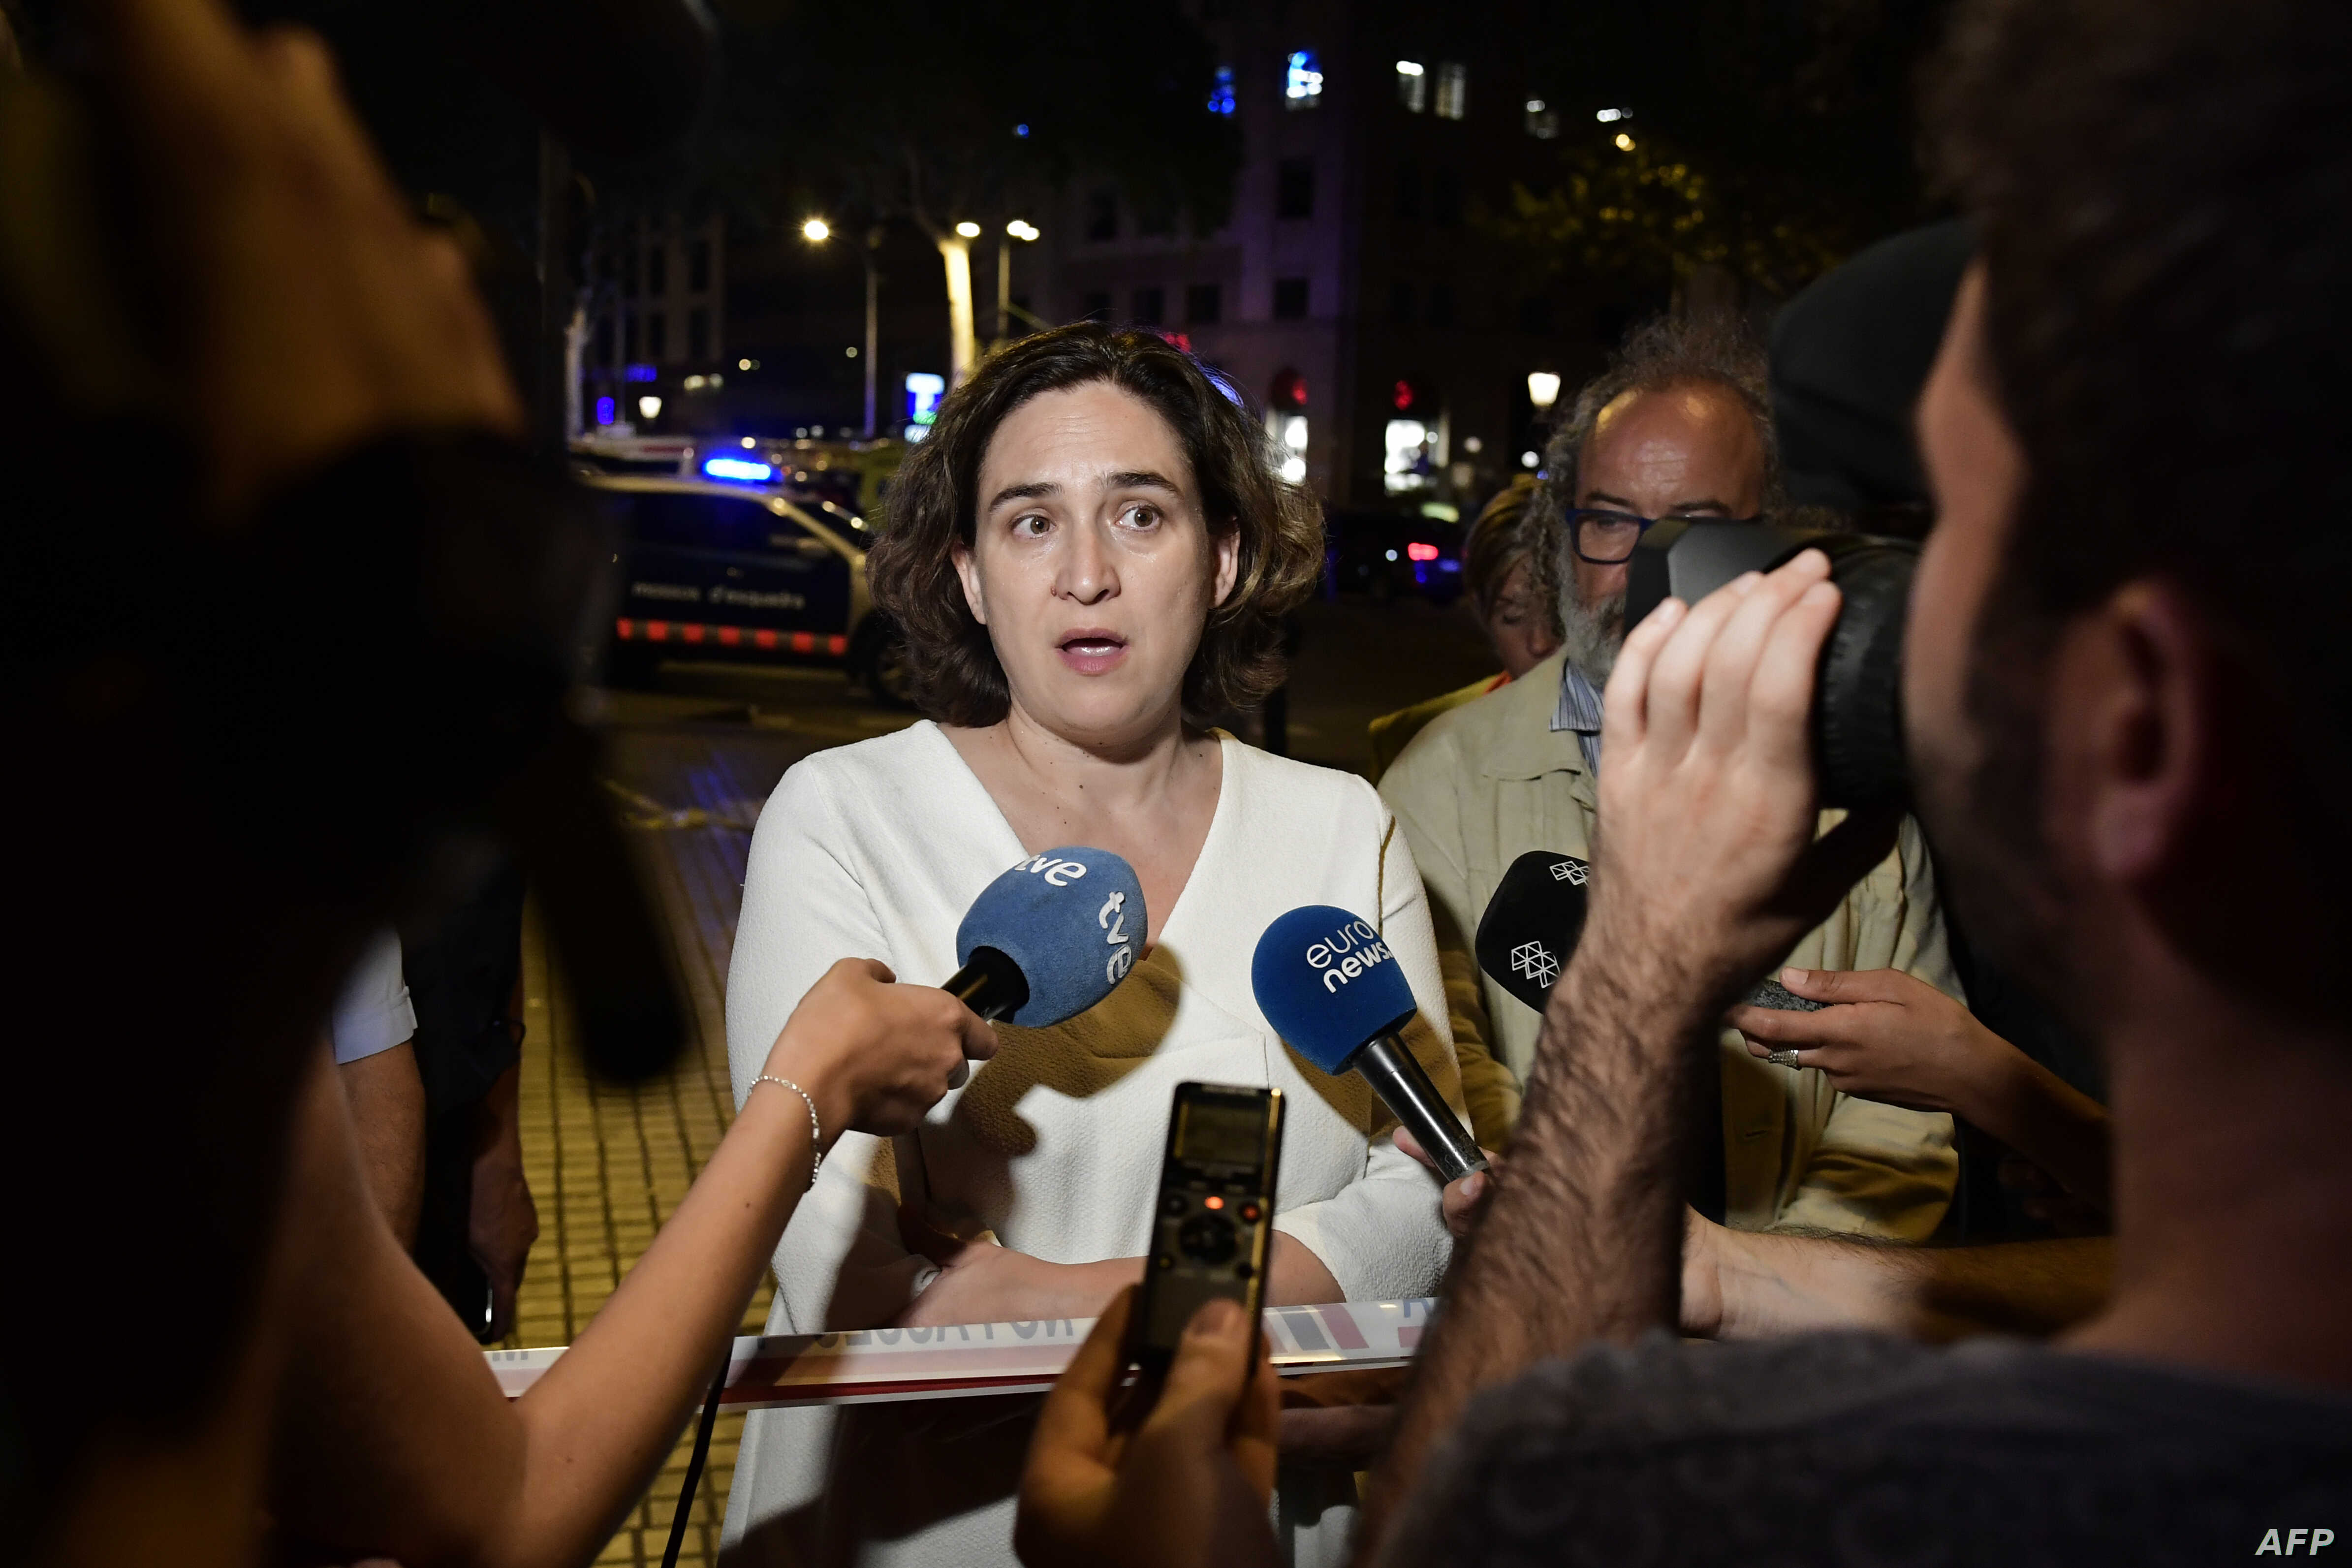 Barcelona's Mayor Ada Colau speaks to the press on the Rambla boulevard after a van ploughed into the crowd, killing at least 13 people and injuring around 100 others on the Rambla in Barcelona, Aug. 17, 2017.